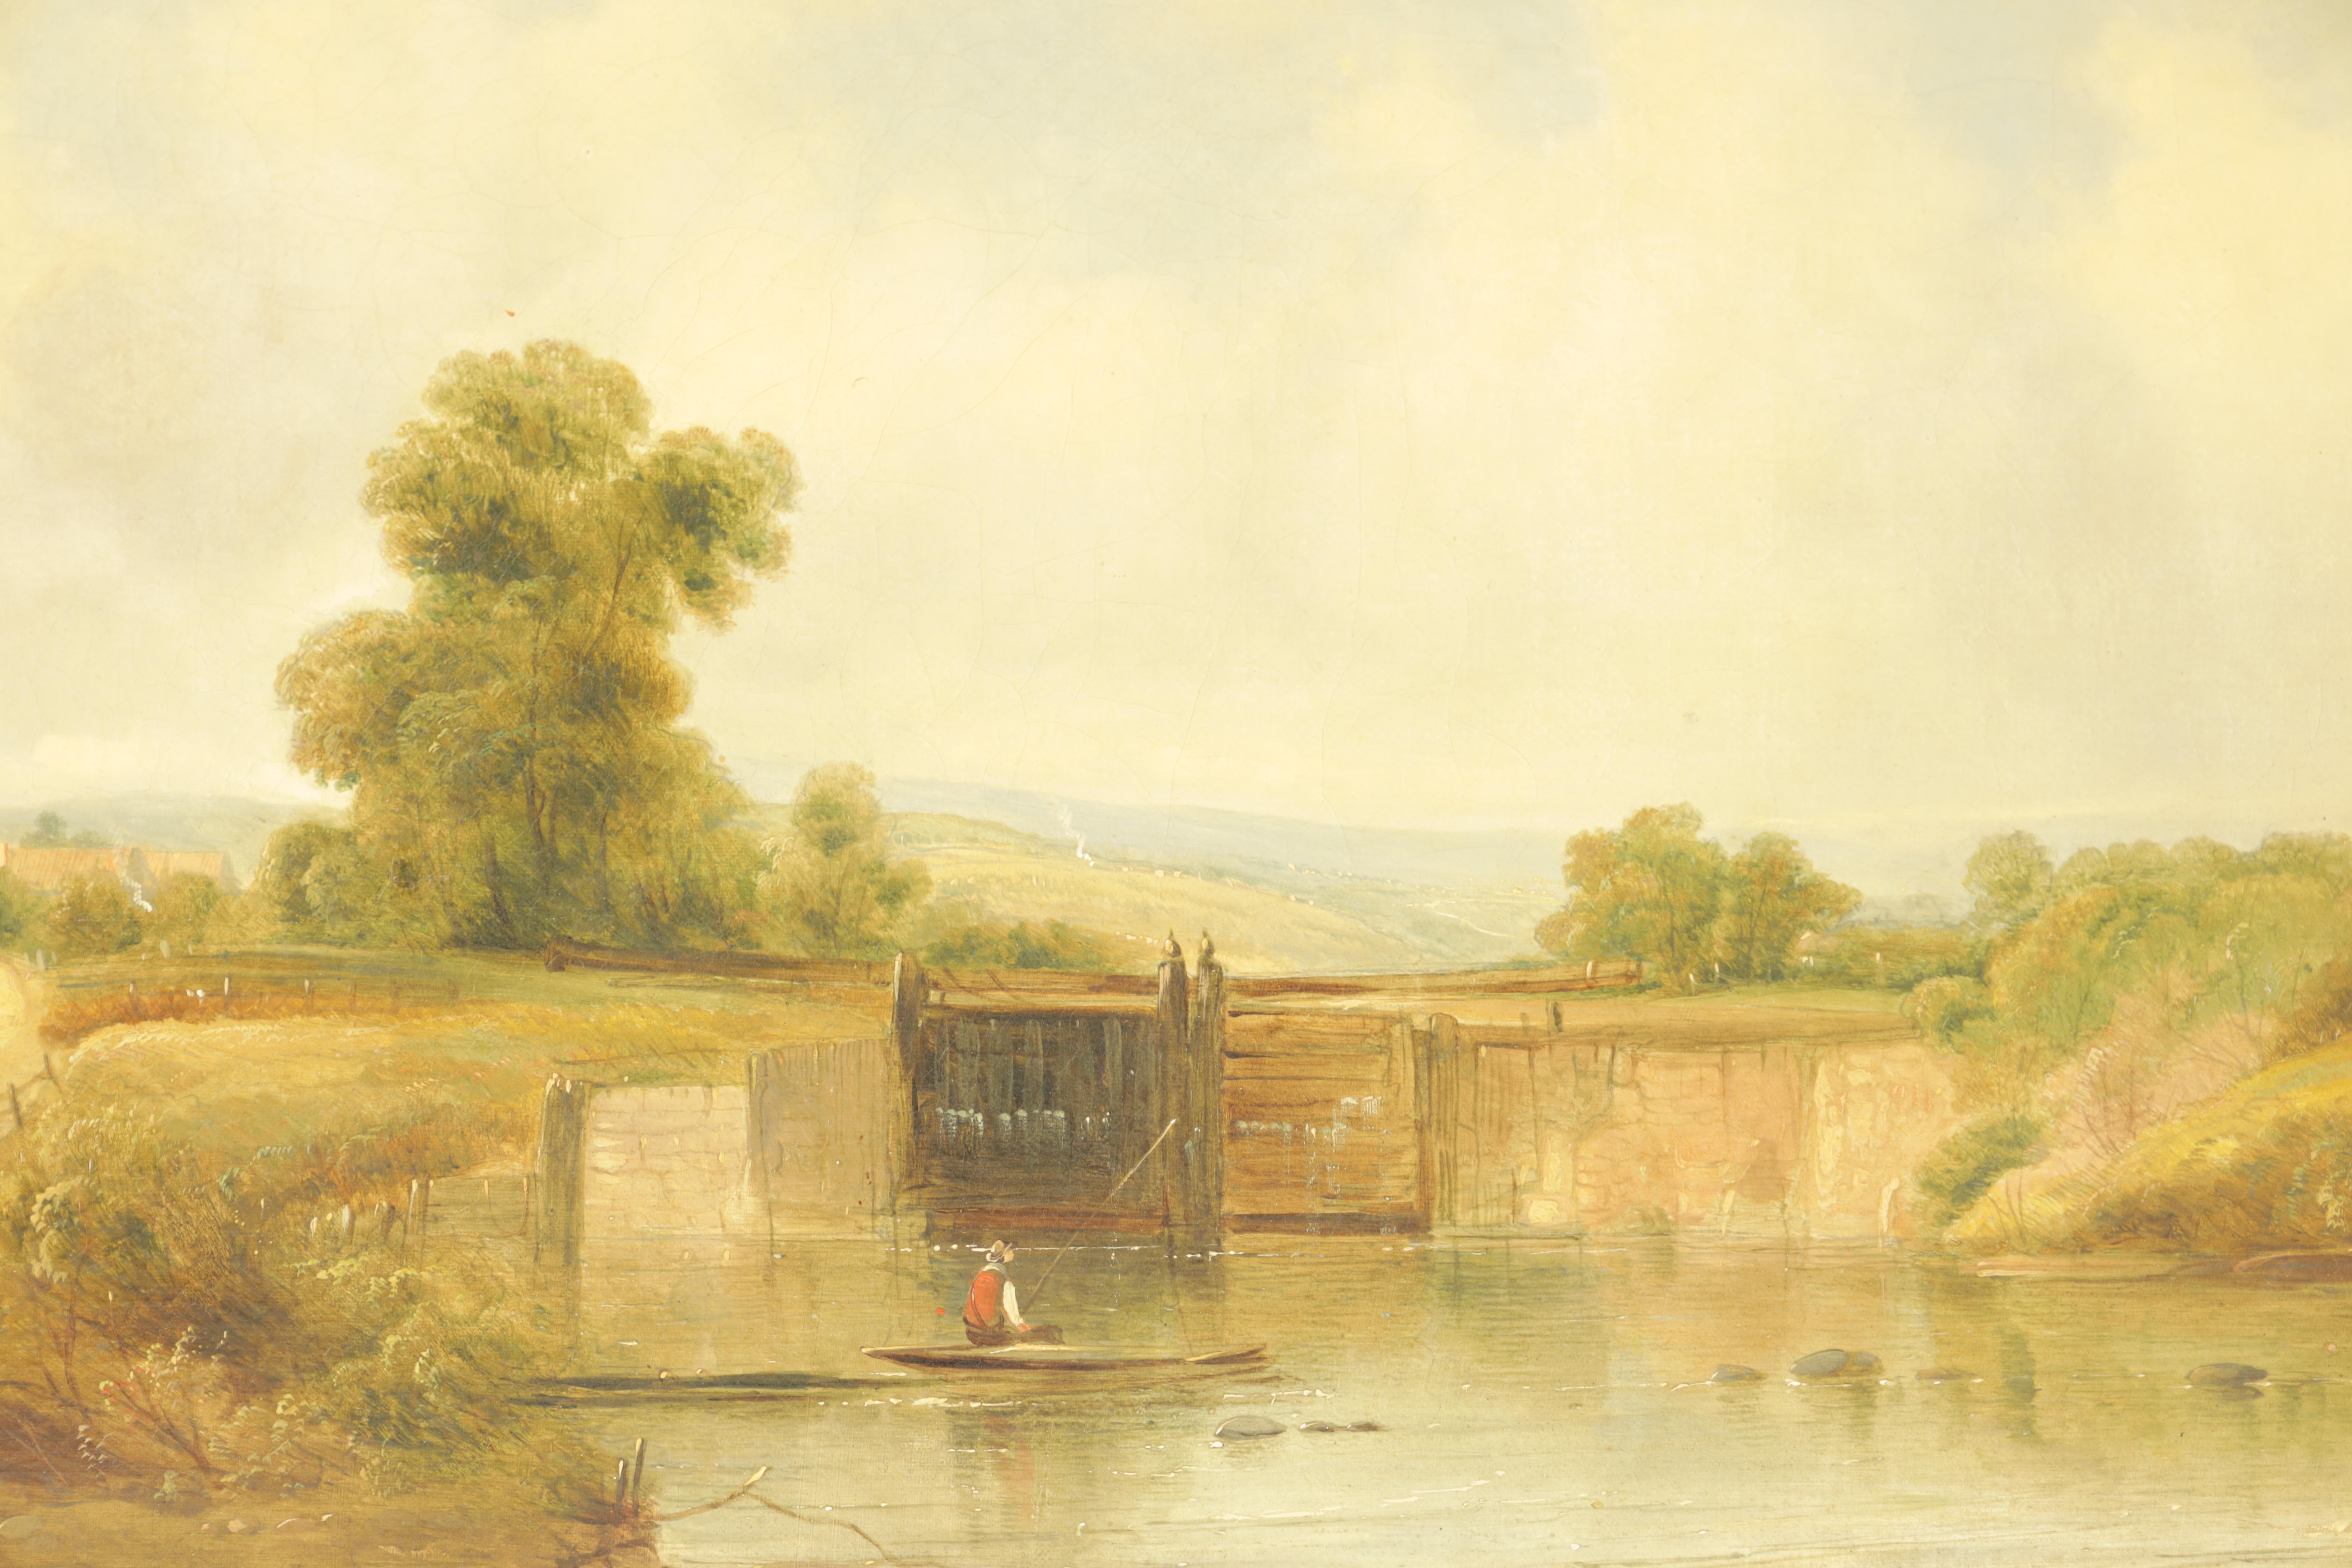 ALFRED H. VICKERS A PAIR OF MID 19TH CENTURY OILS ON CANVAS depicting river landscapes - signed - Image 2 of 8